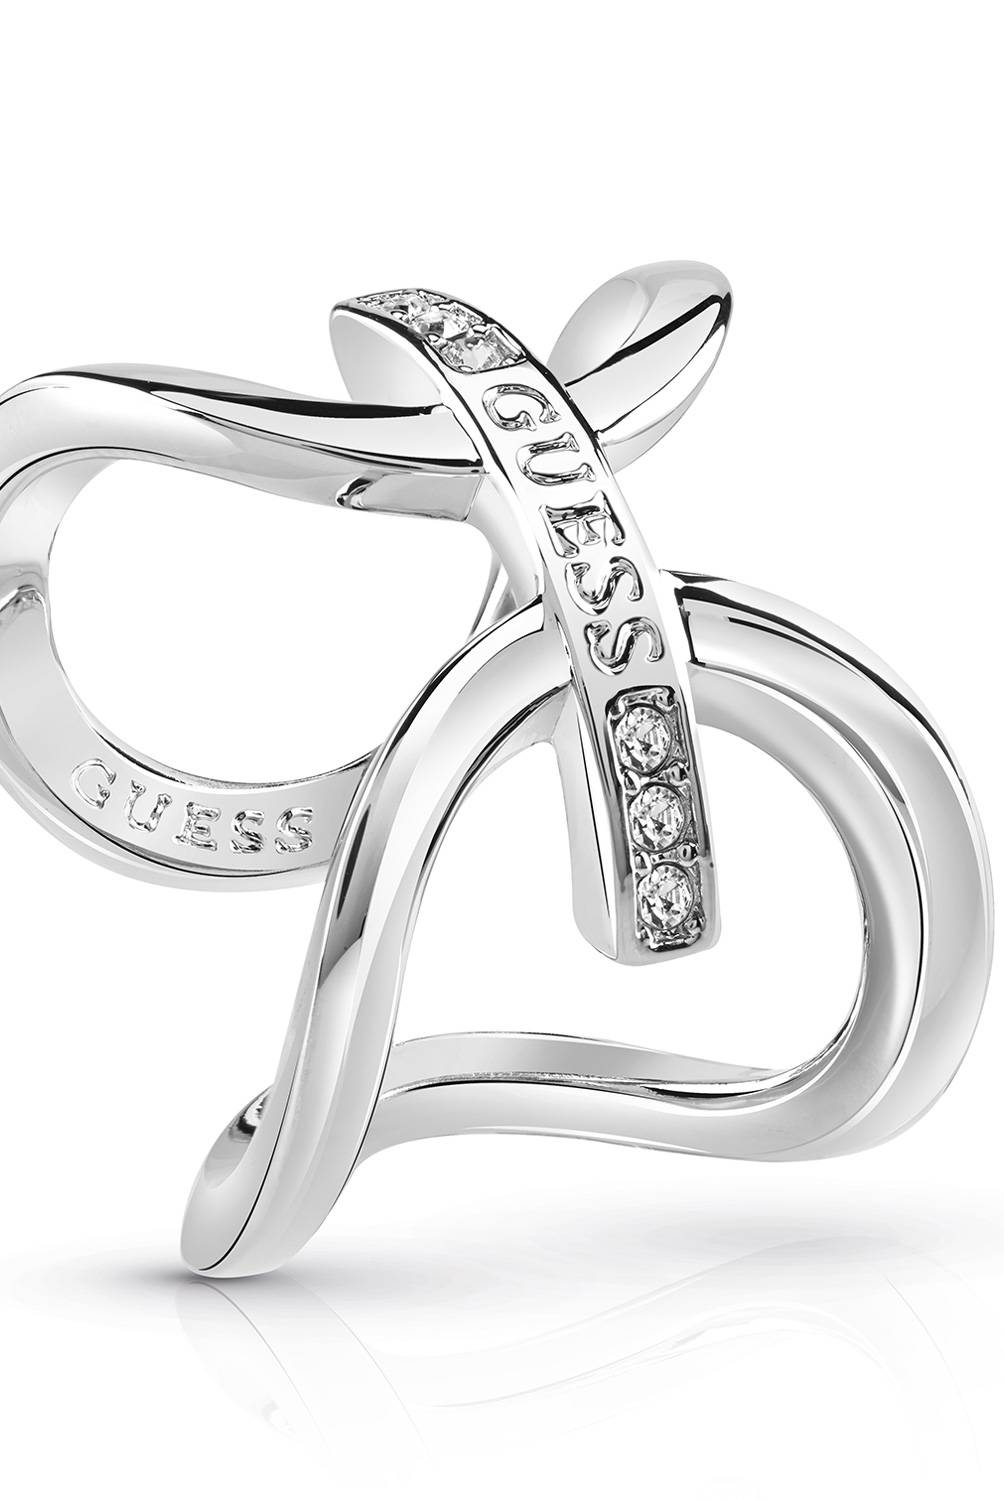 Guess - Anillo Guess Future Essential UBR84045-56